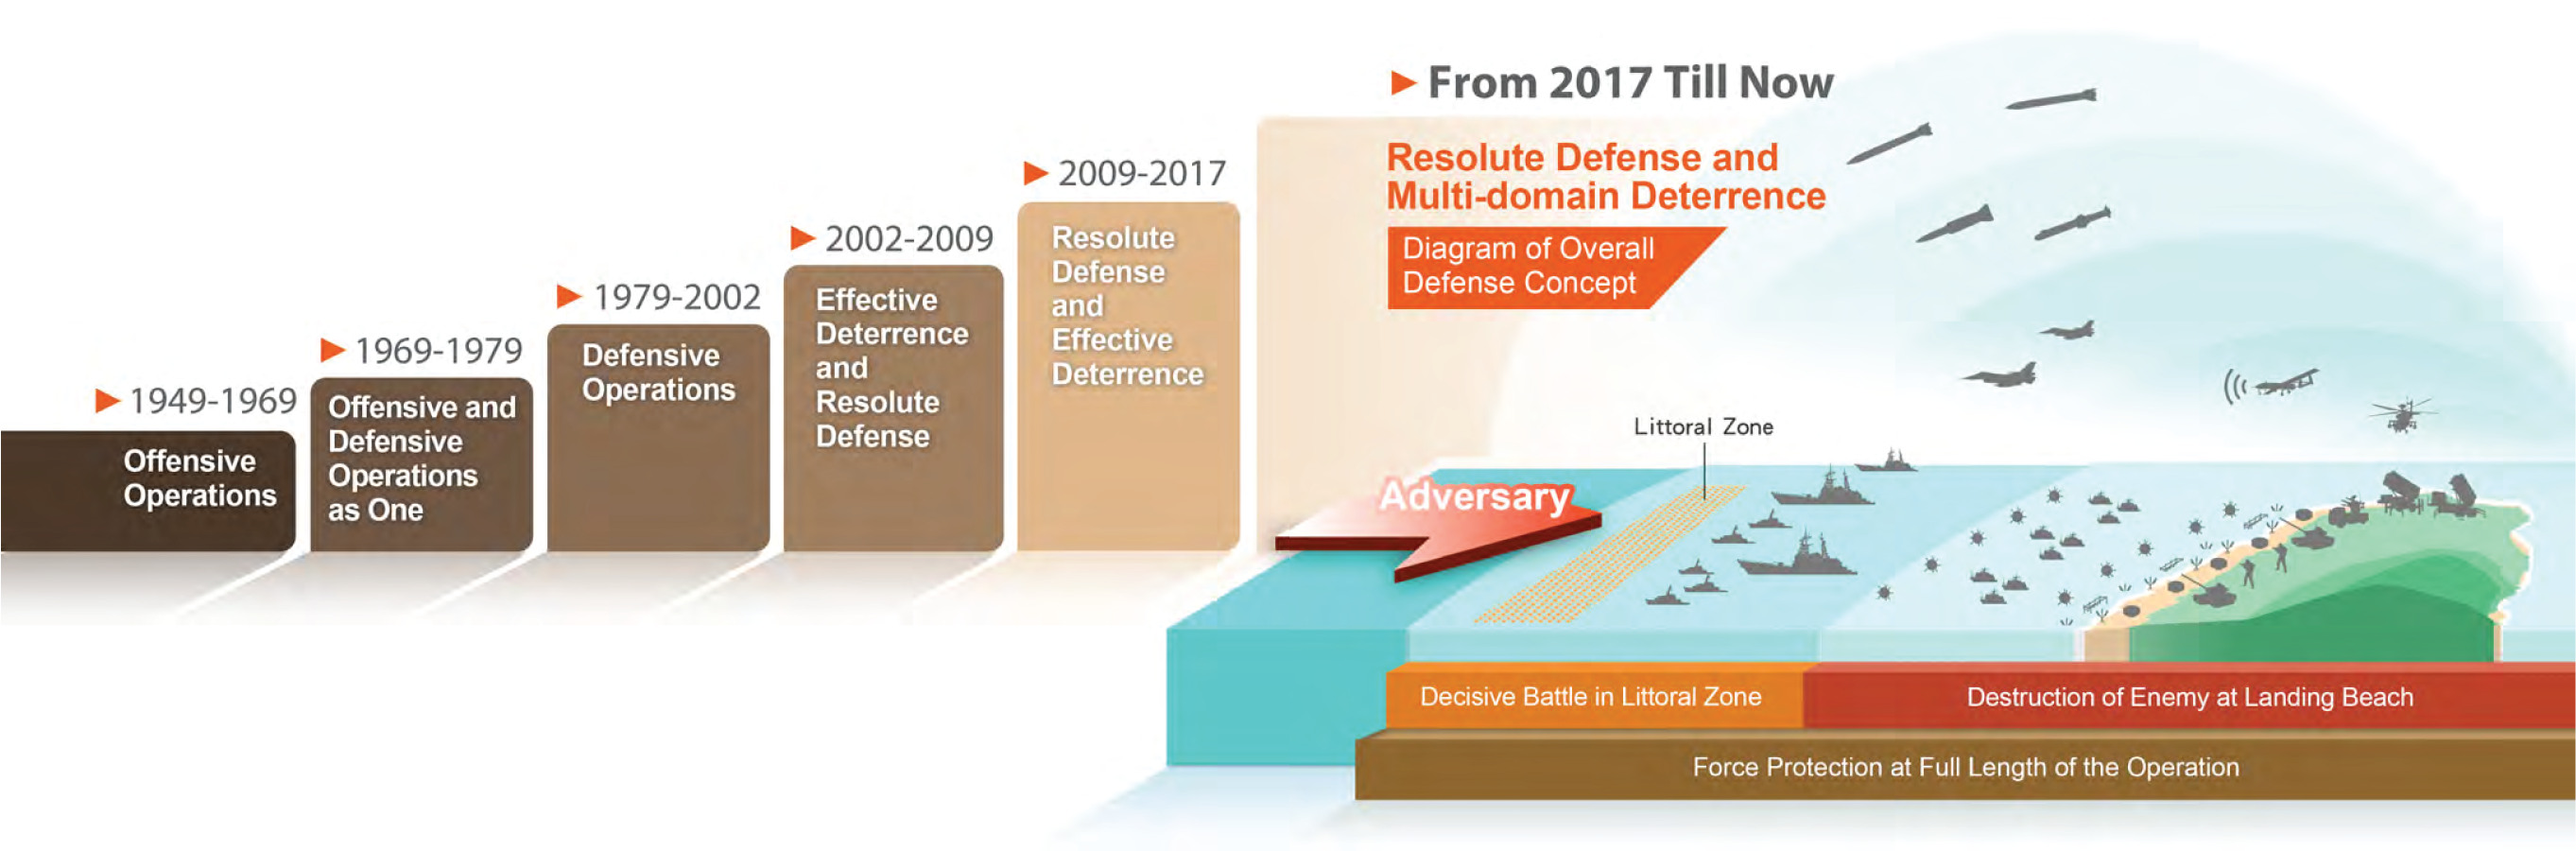 Taiwan-National-Defense-Report-2019